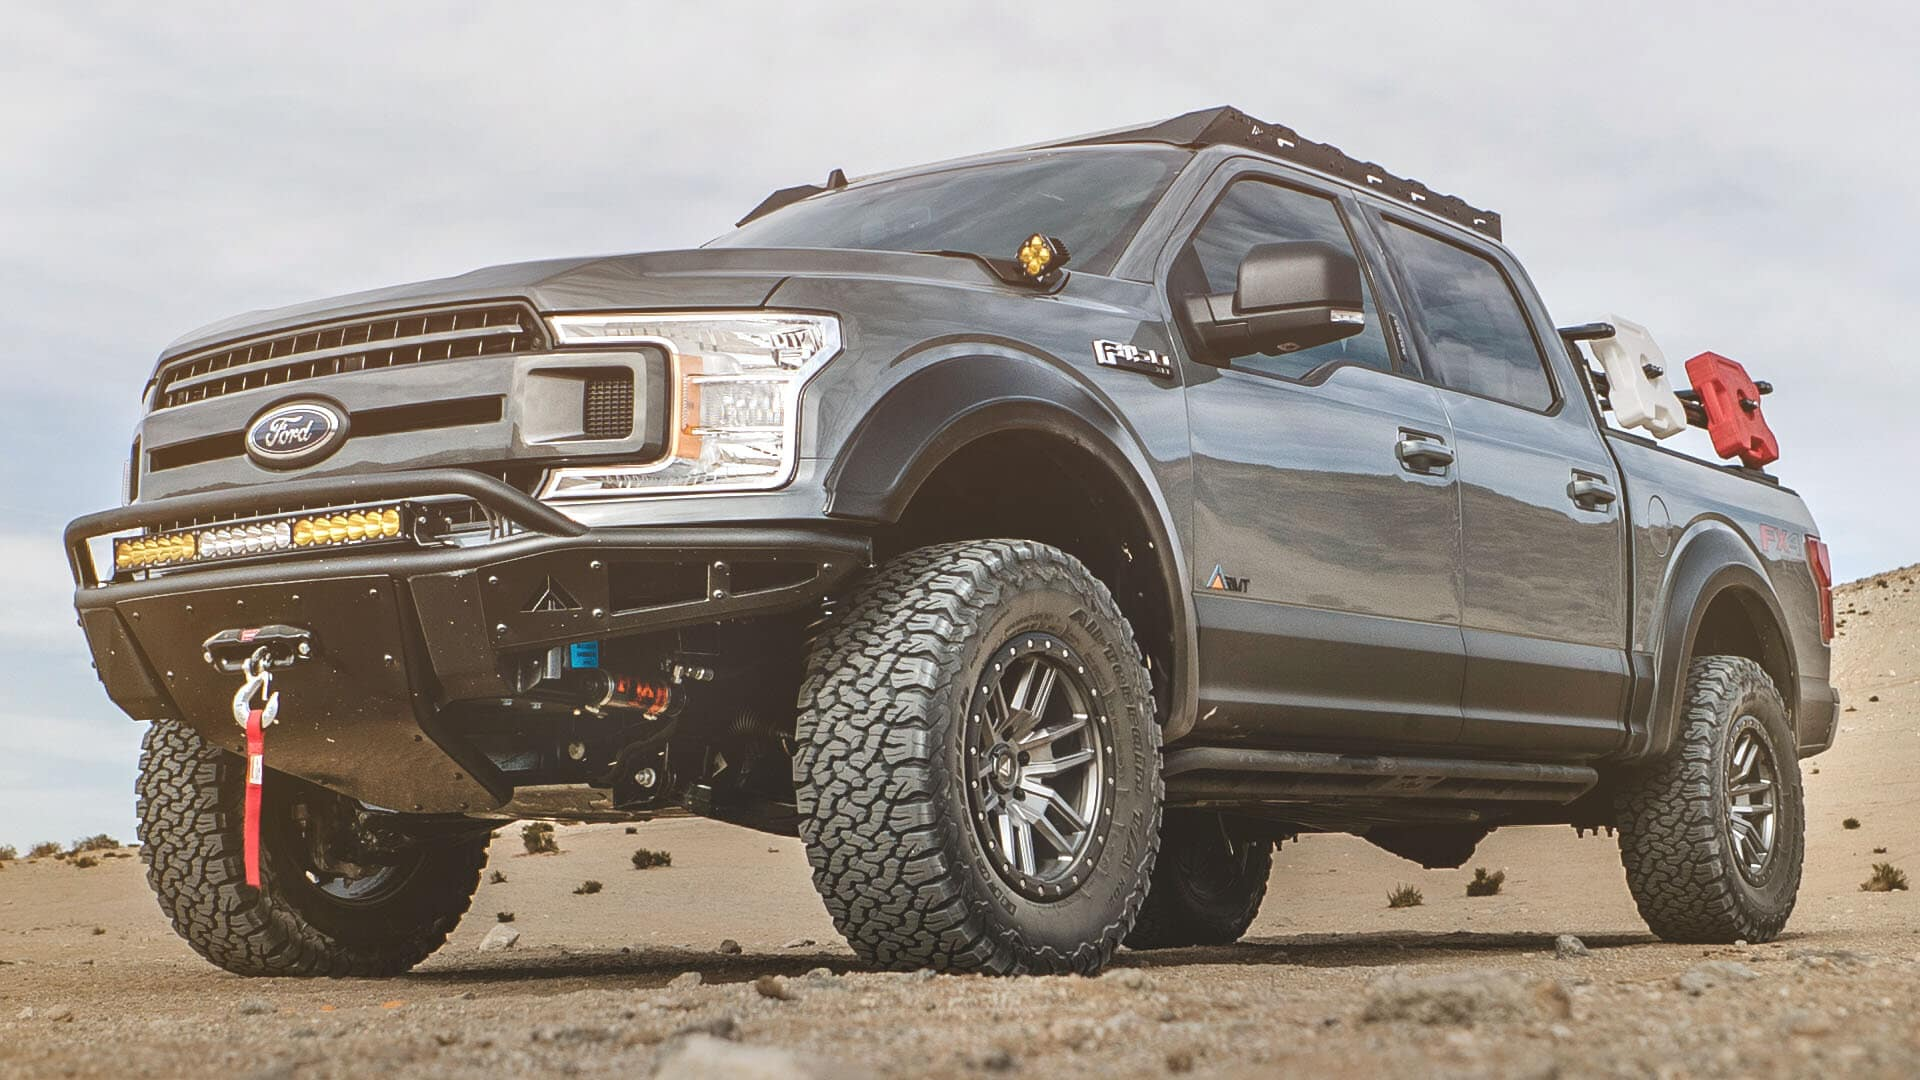 Sewell Ford RMT Overland Dealer in West Texas Ford F-150 Edition